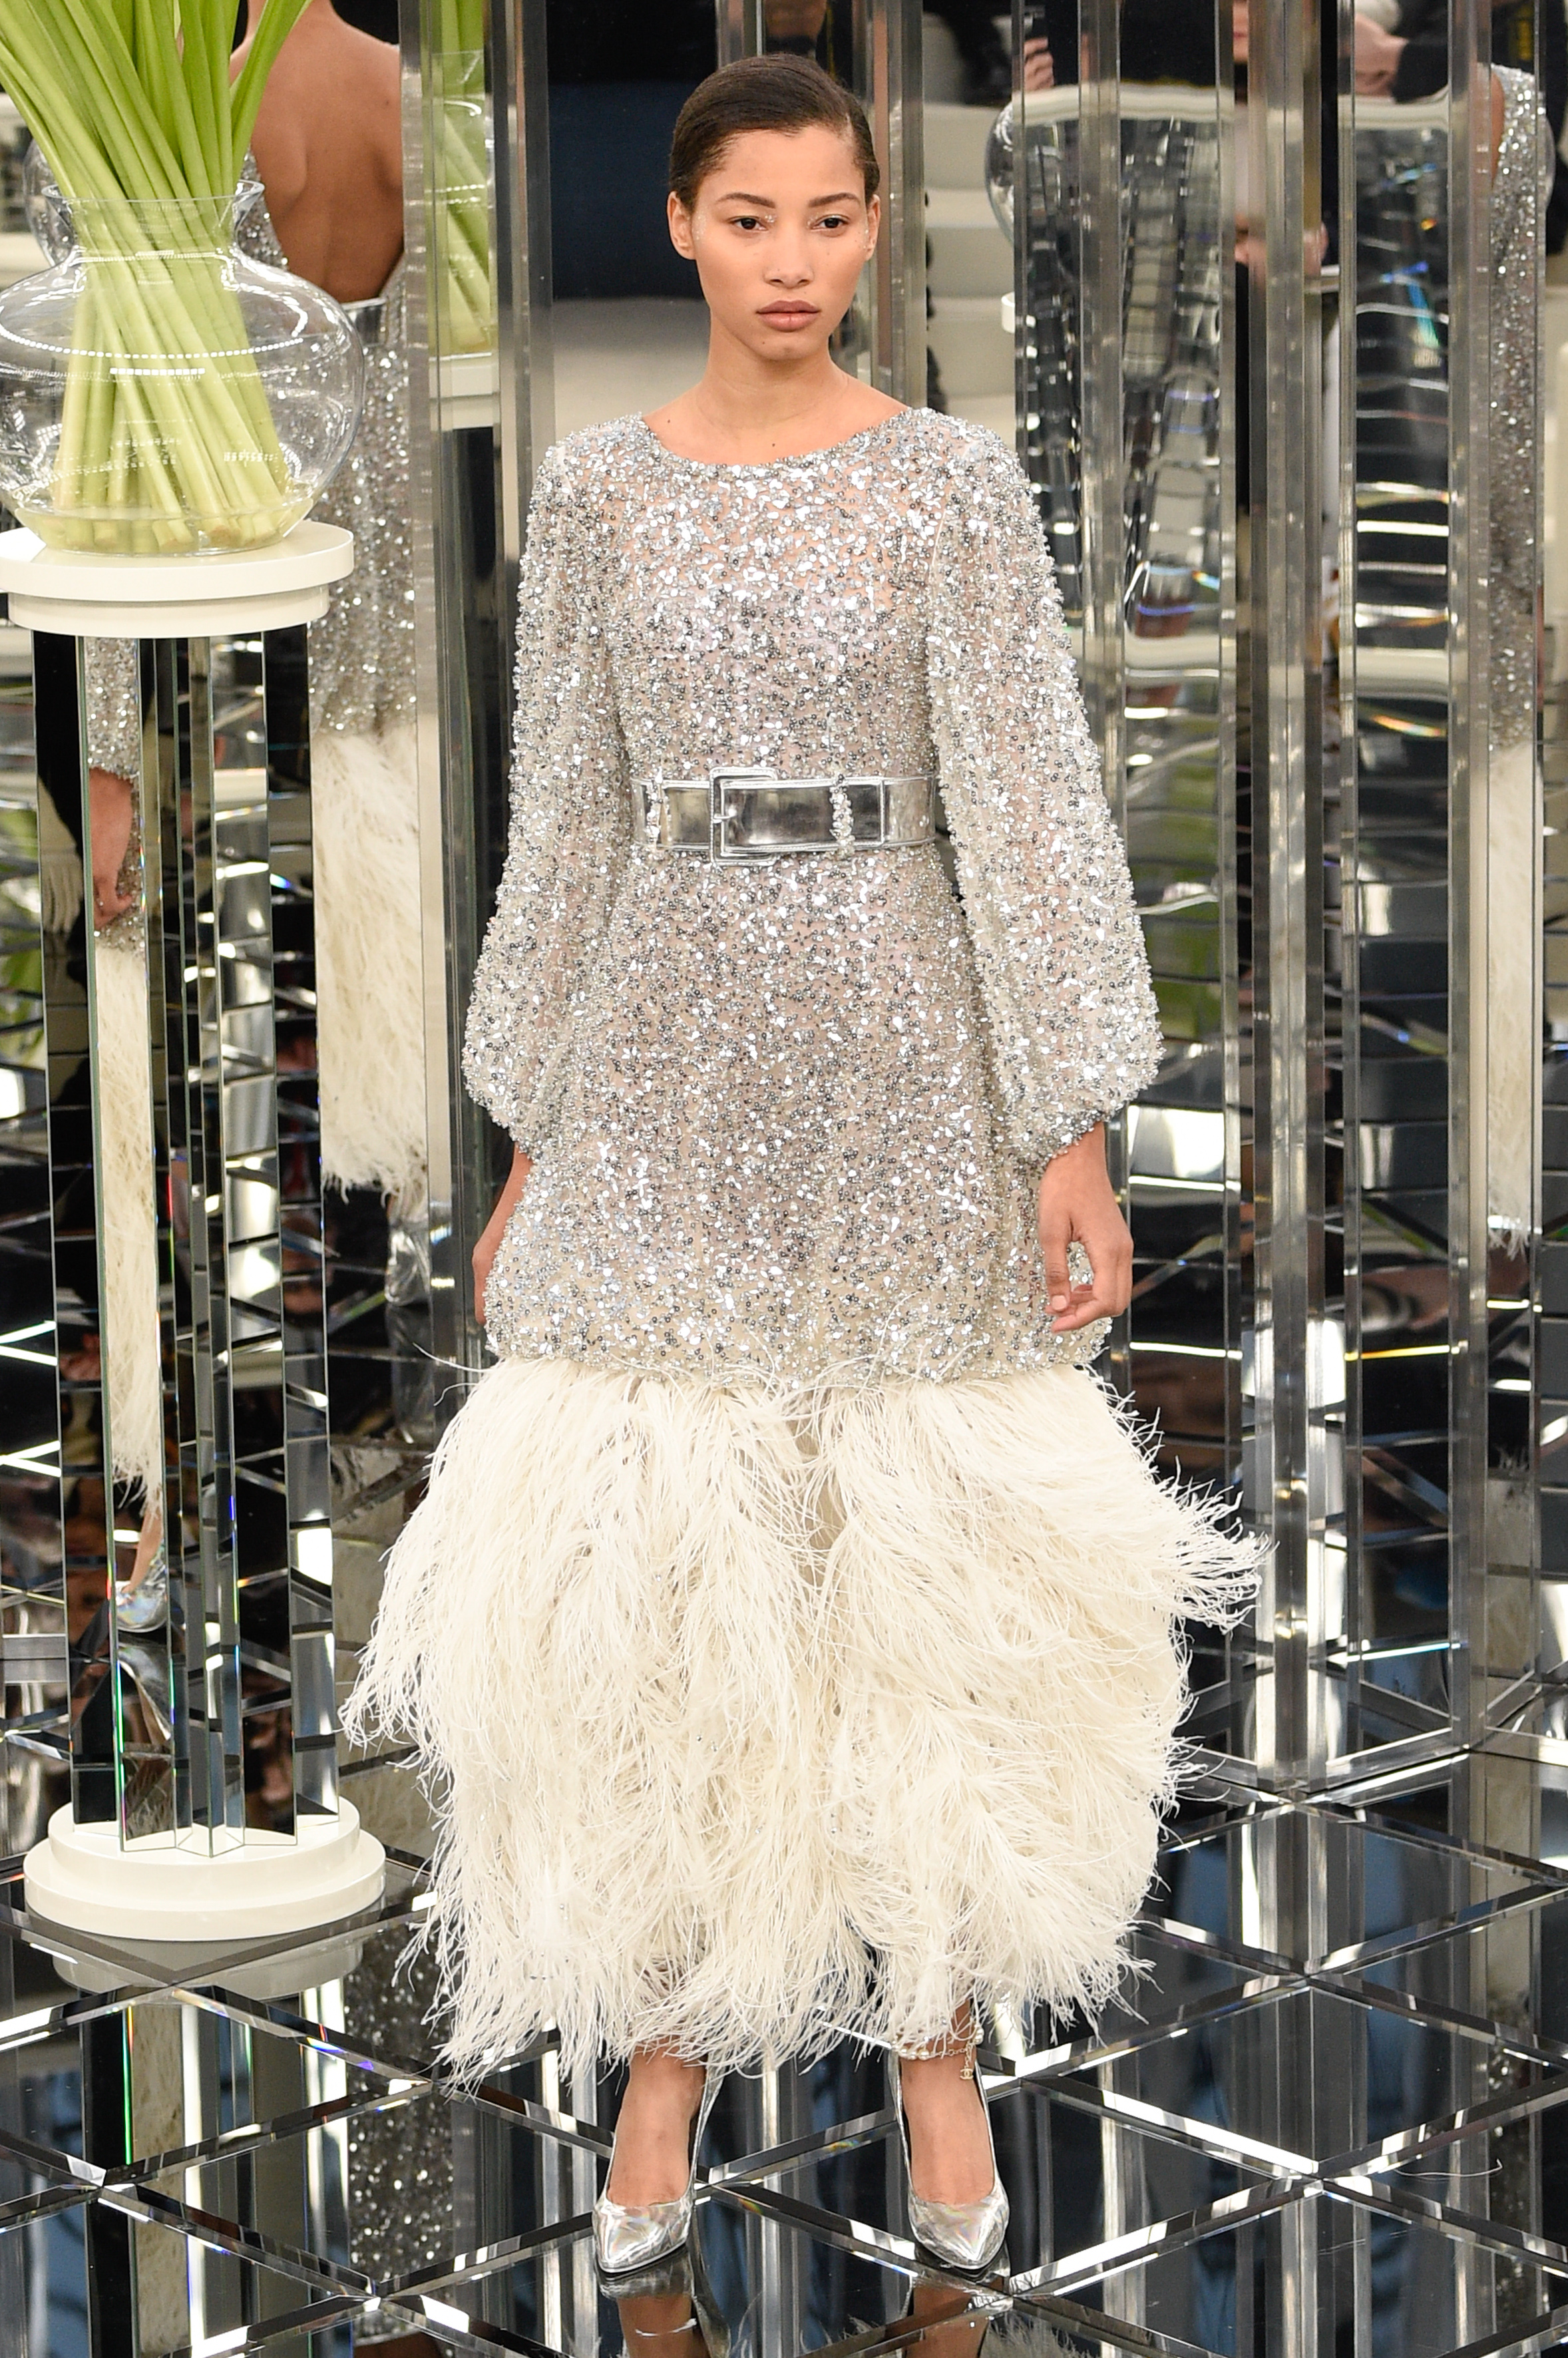 PARIS, FRANCE - JANUARY 24: Lineisy Montero walks the runway during the Chanel Spring Summer 2017 show as part of Paris Fashion Week on January 24, 2017 in Paris, France. (Photo by Peter White/Getty Images)